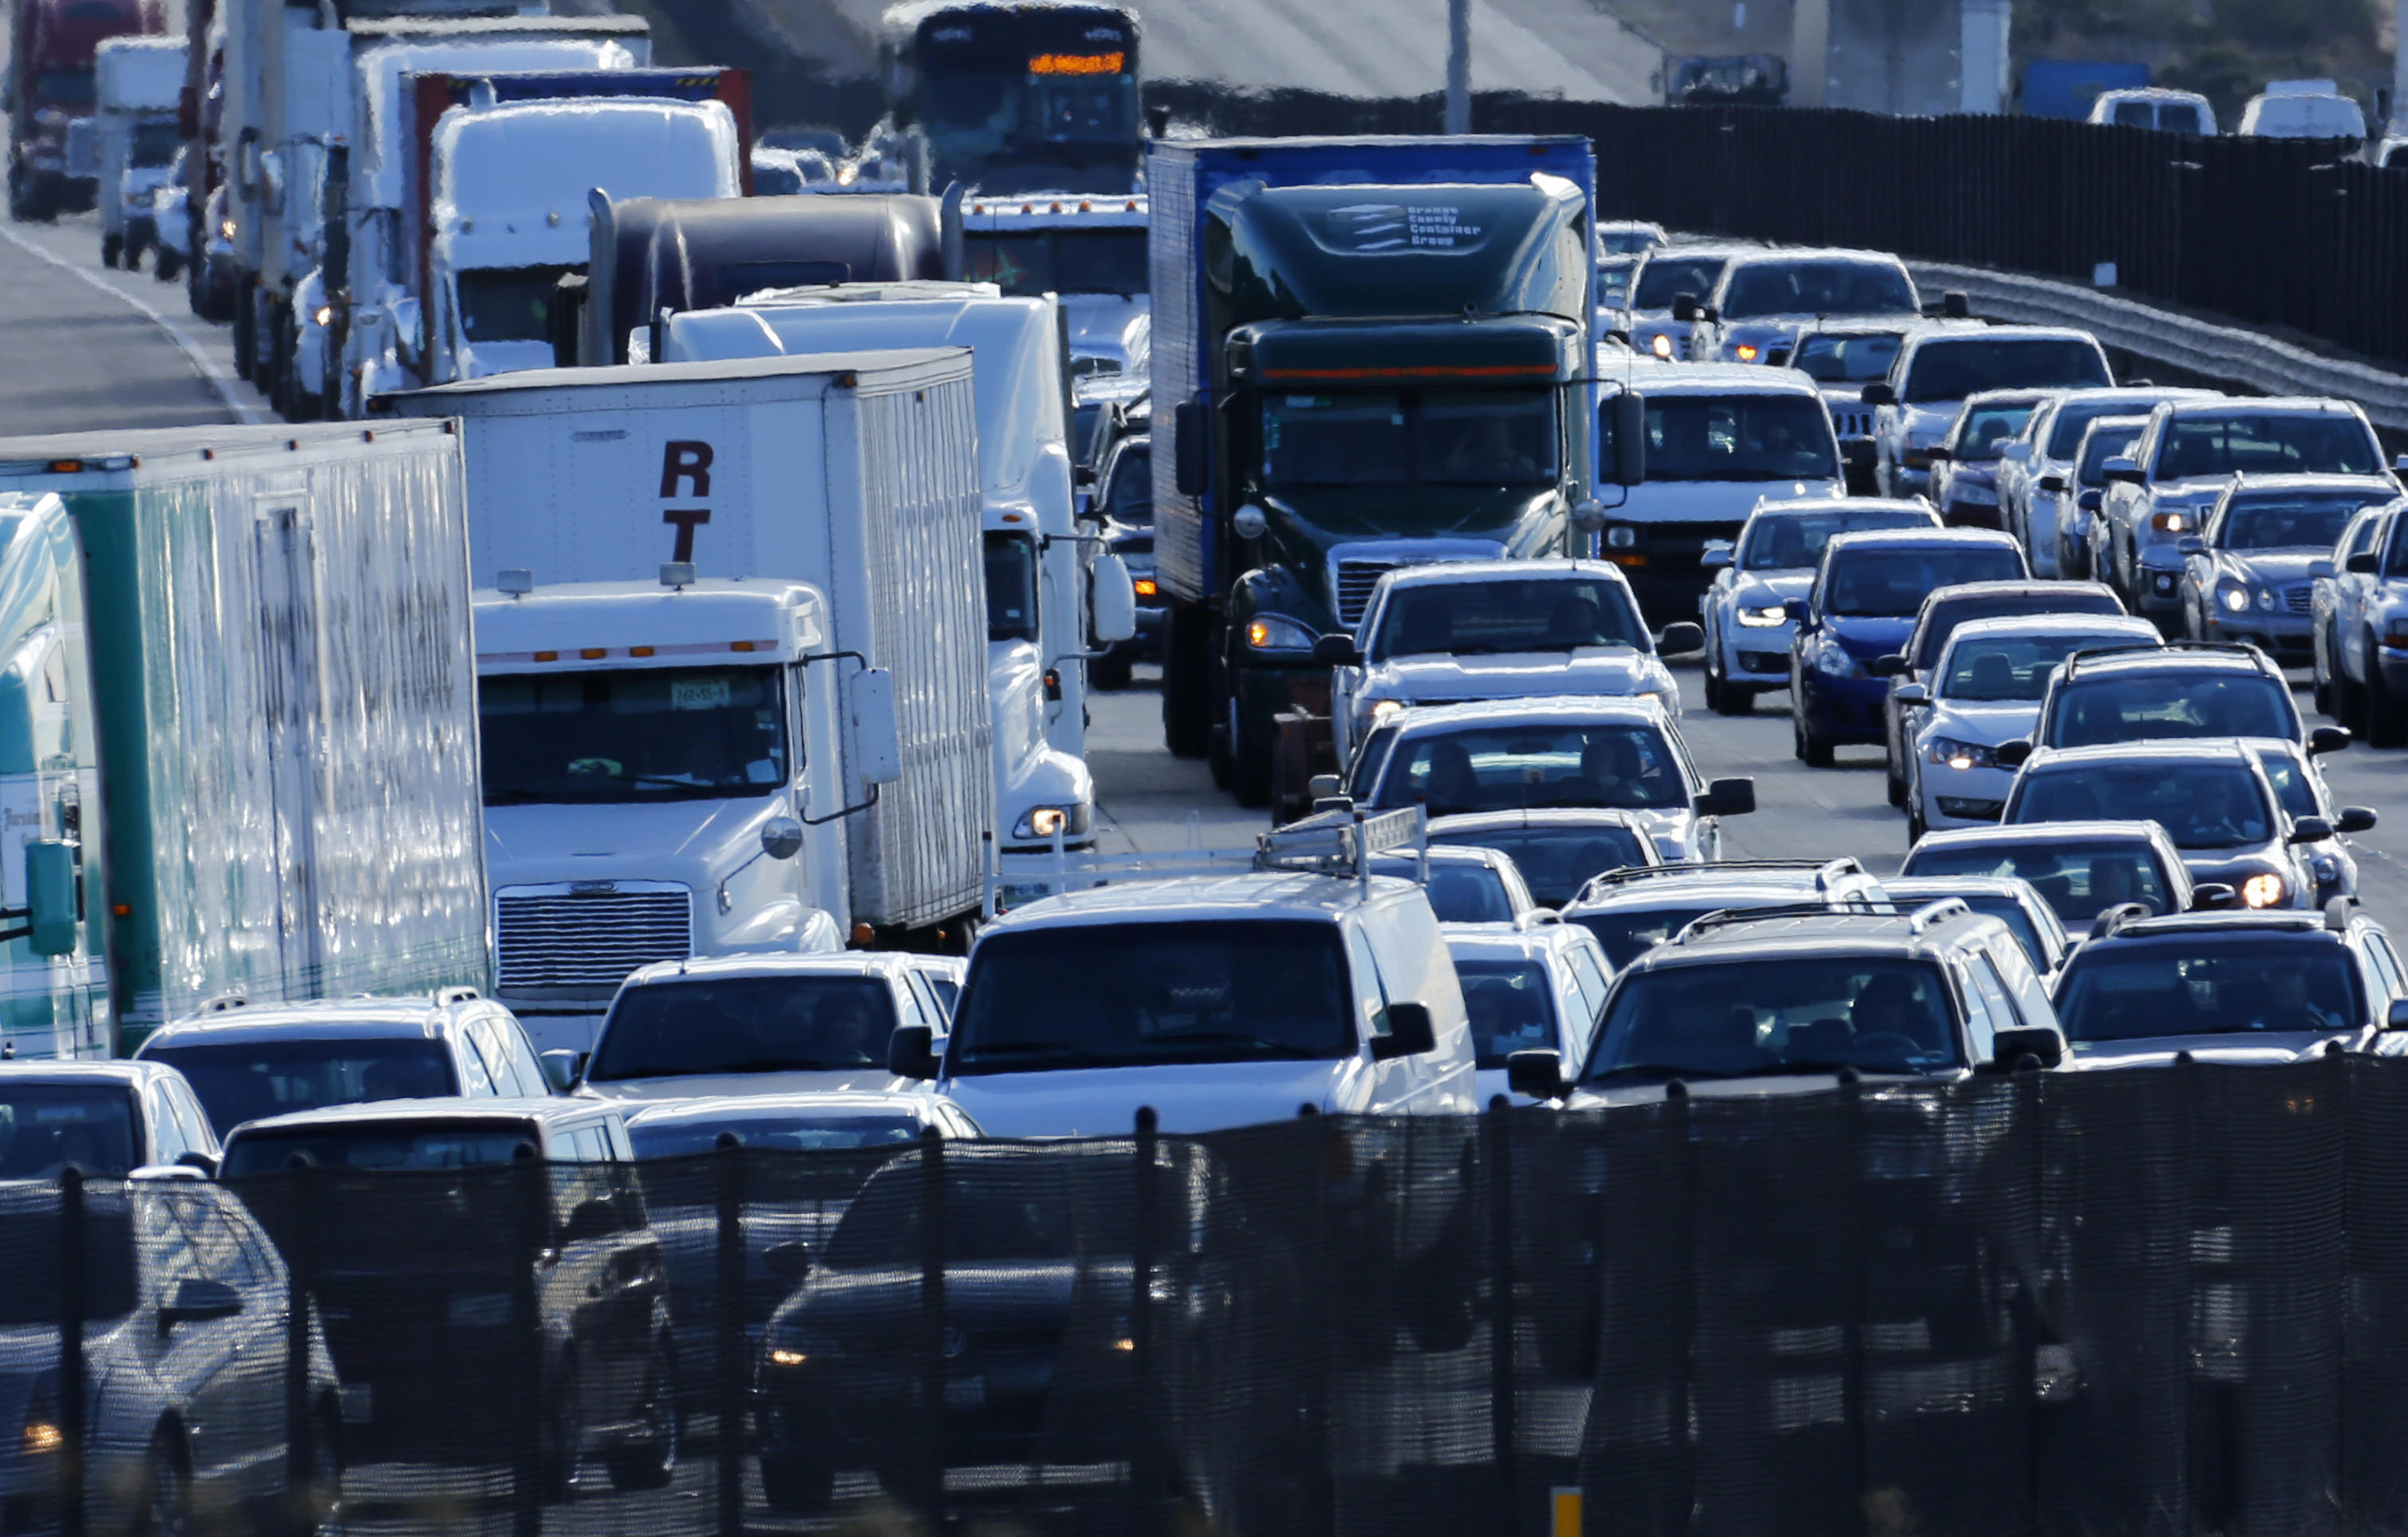 Automobile traffic backs-up as it travels north from San Diego to Los Angeles along Interstate Highway 5 in California December 10, 2013. REUTERS/Mike Blake (UNITED STATES - Tags: TRANSPORT SOCIETY) - RTX16CQU